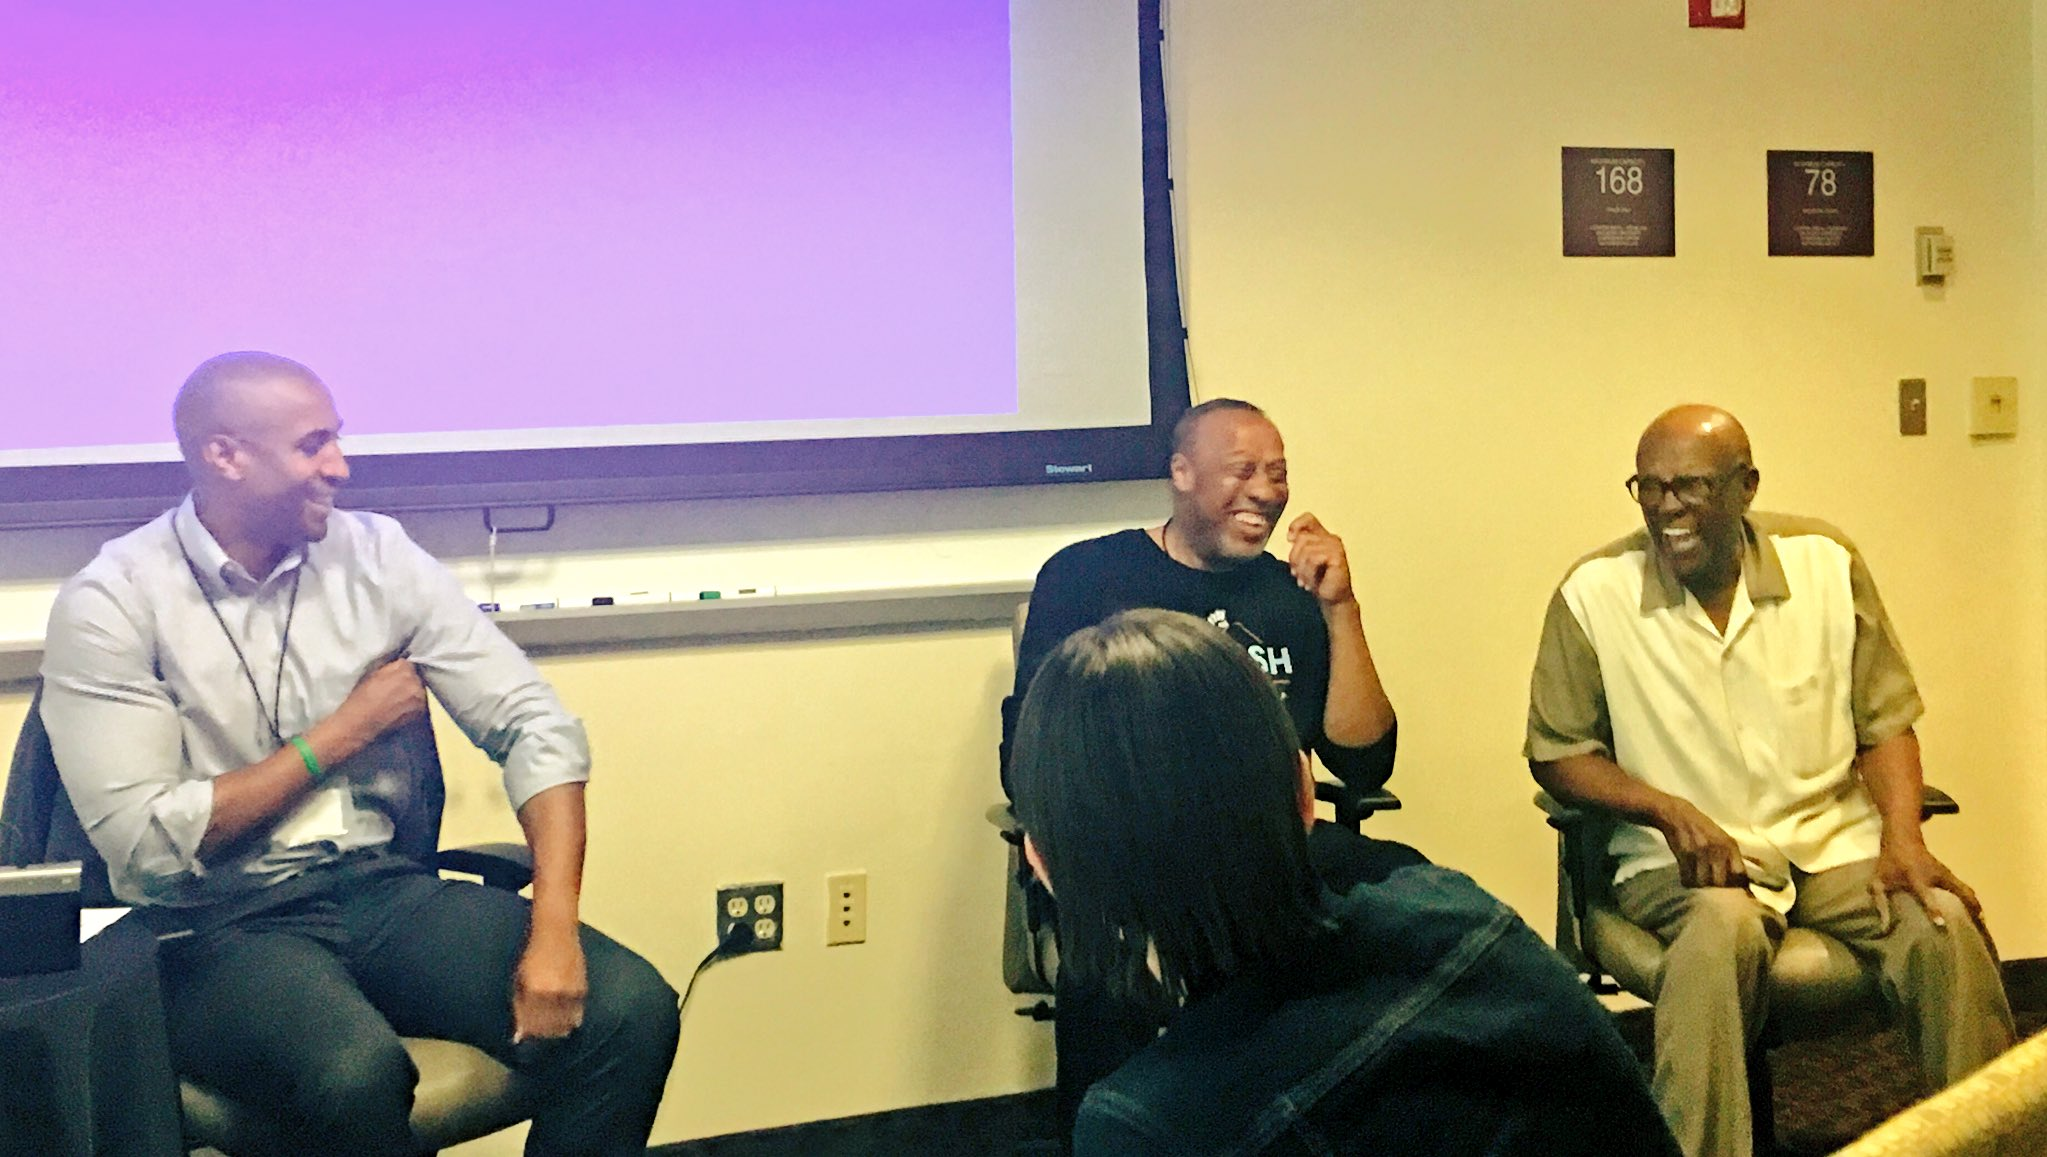 """""""Know your story, be authentic, trust your gut, and have fun w/ it""""- Public speaking panel at #Crispbootcamp #macrosw #USCmsw #fighton ❤️💛✌🏽 https://t.co/8VzJLJNAok"""